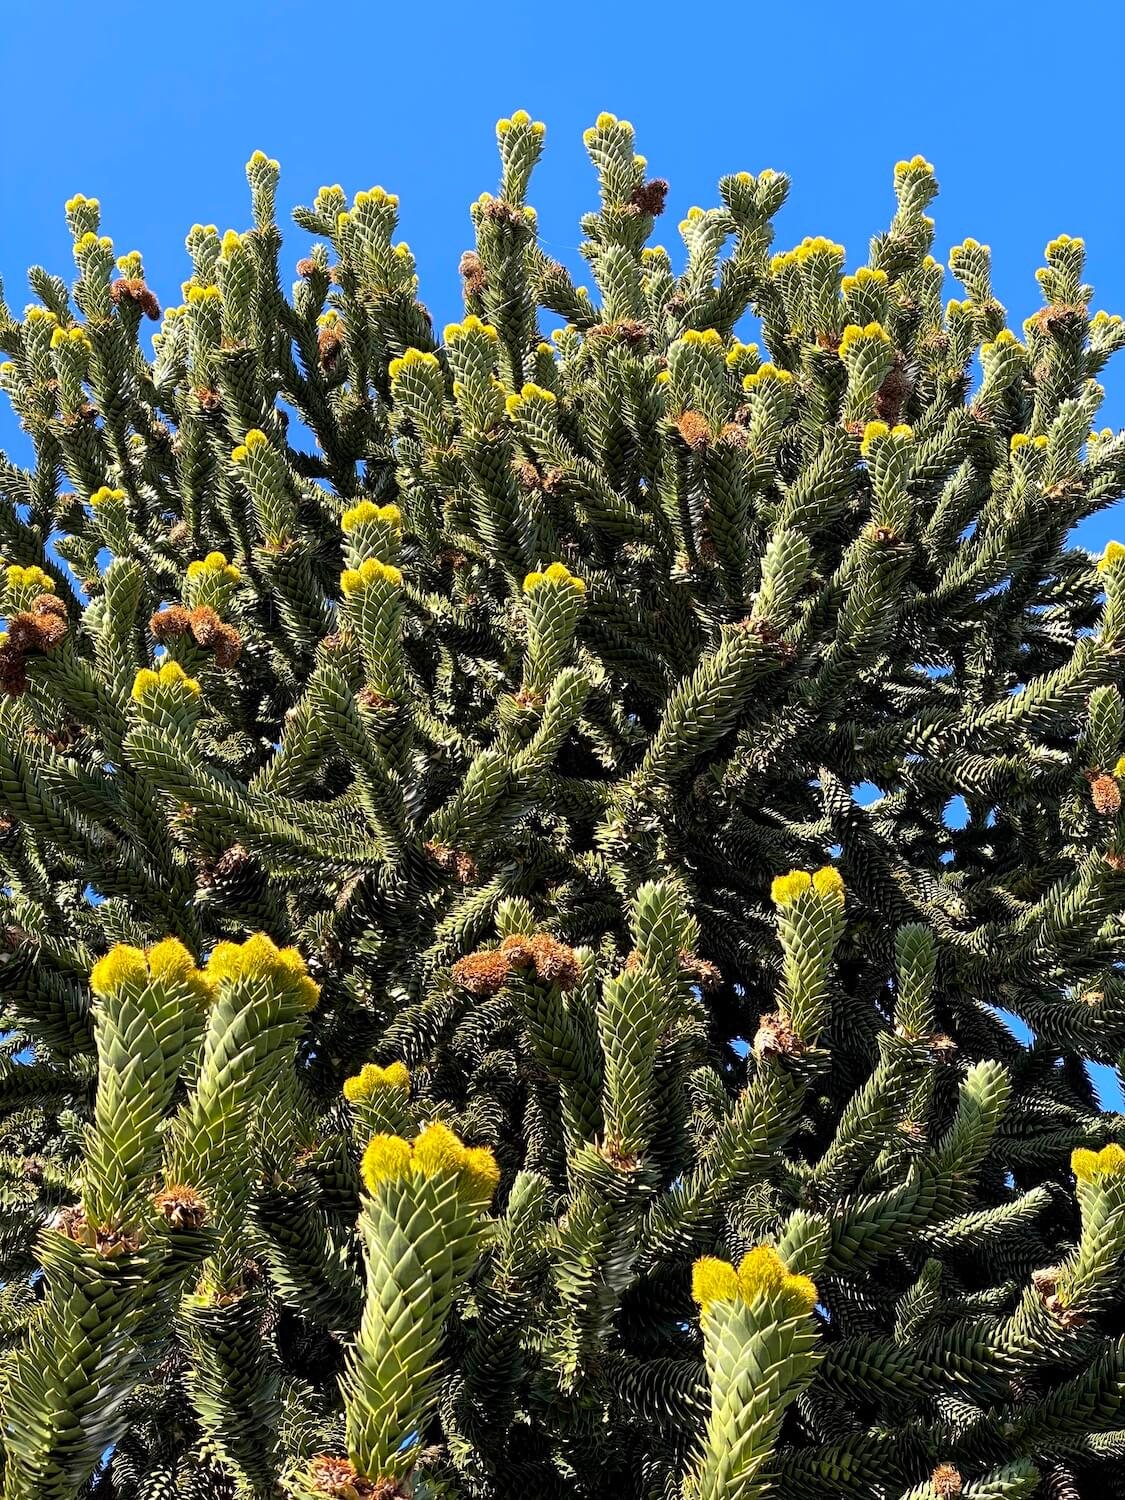 A monkey puzzle tree blooms in Spring in Seattle with green prickly branches and yellowish flowers where the new growth is extending out.